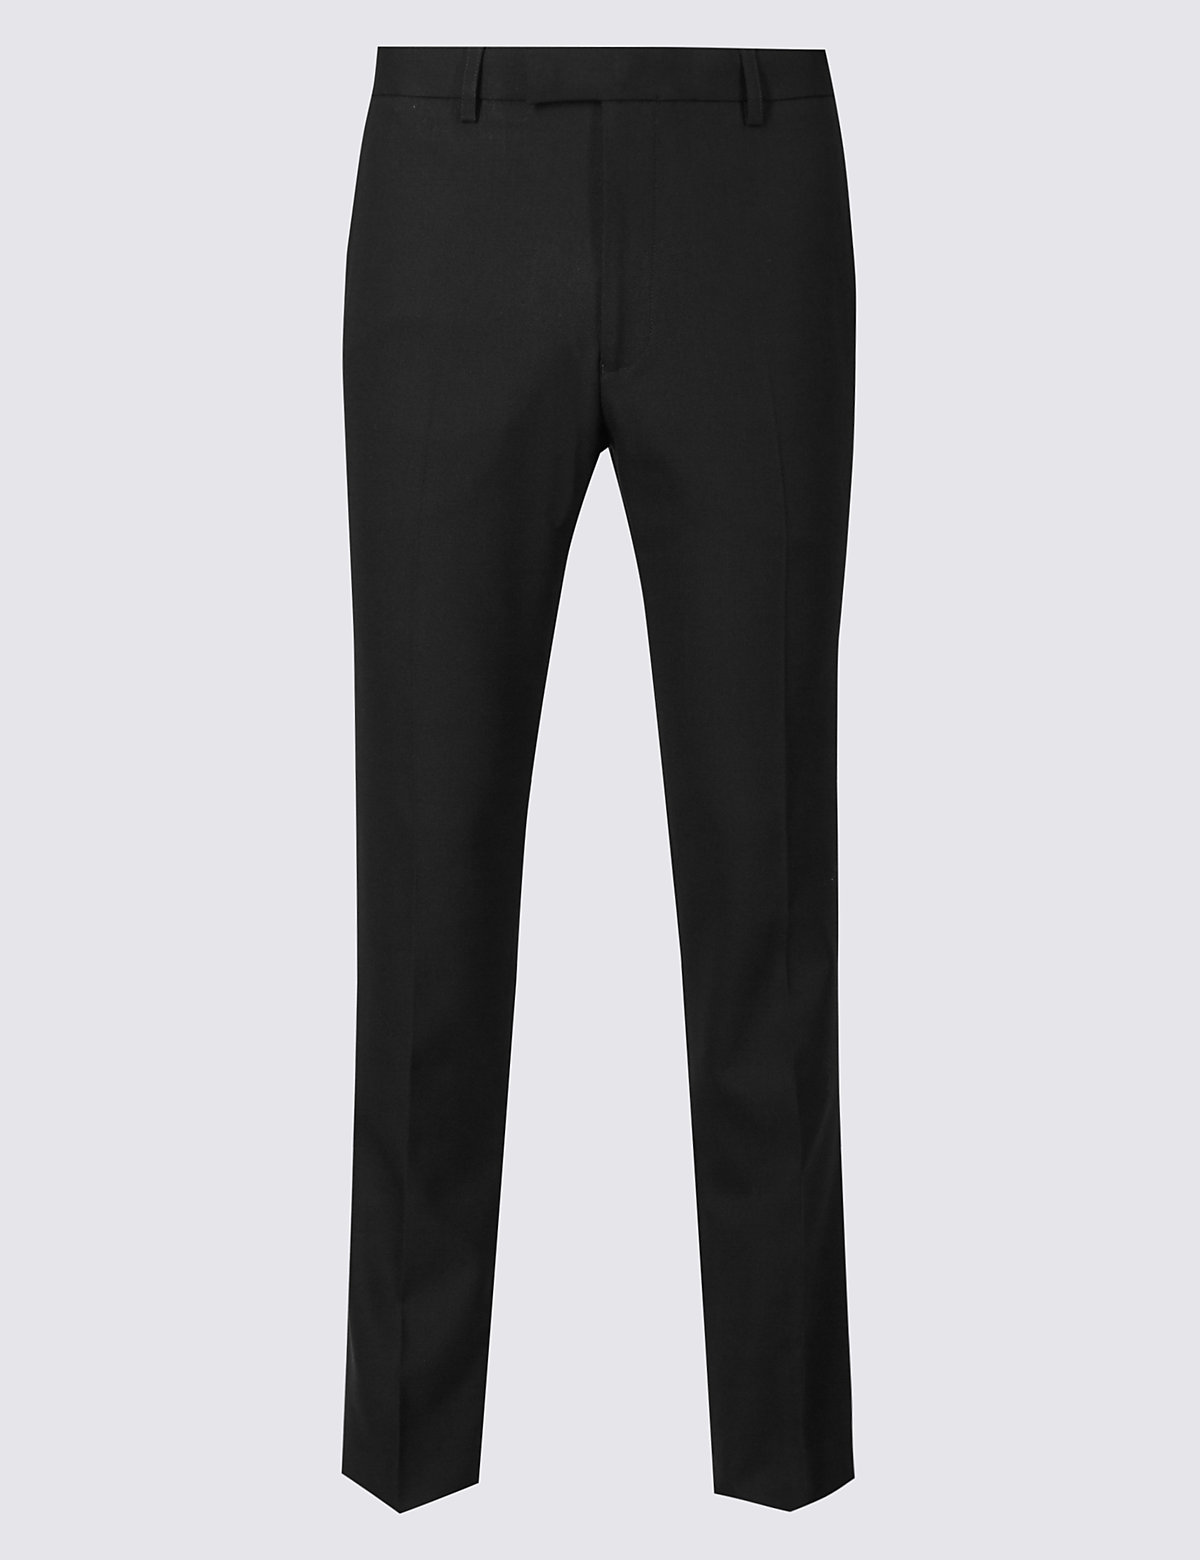 Marks & Spencer Black Modern Slim Fit Trousers